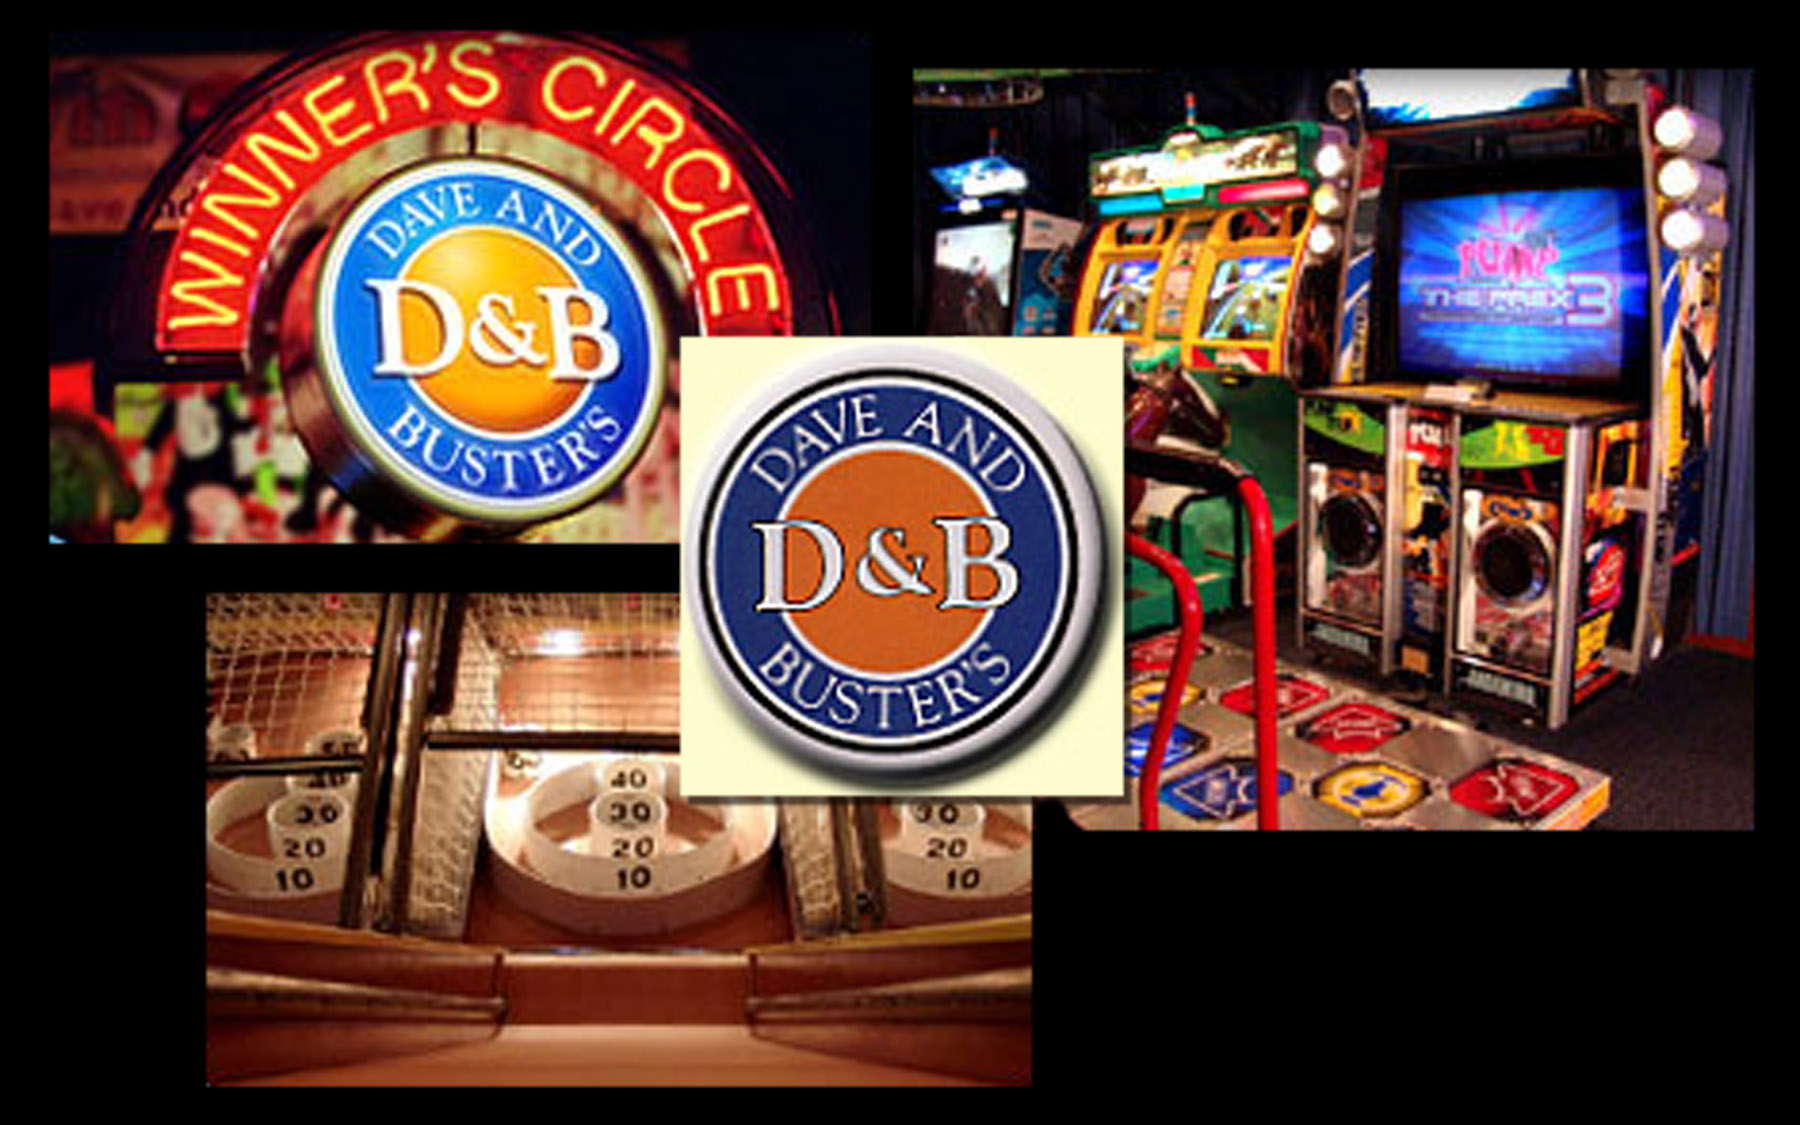 Dave & Buster's in Nashville, TN